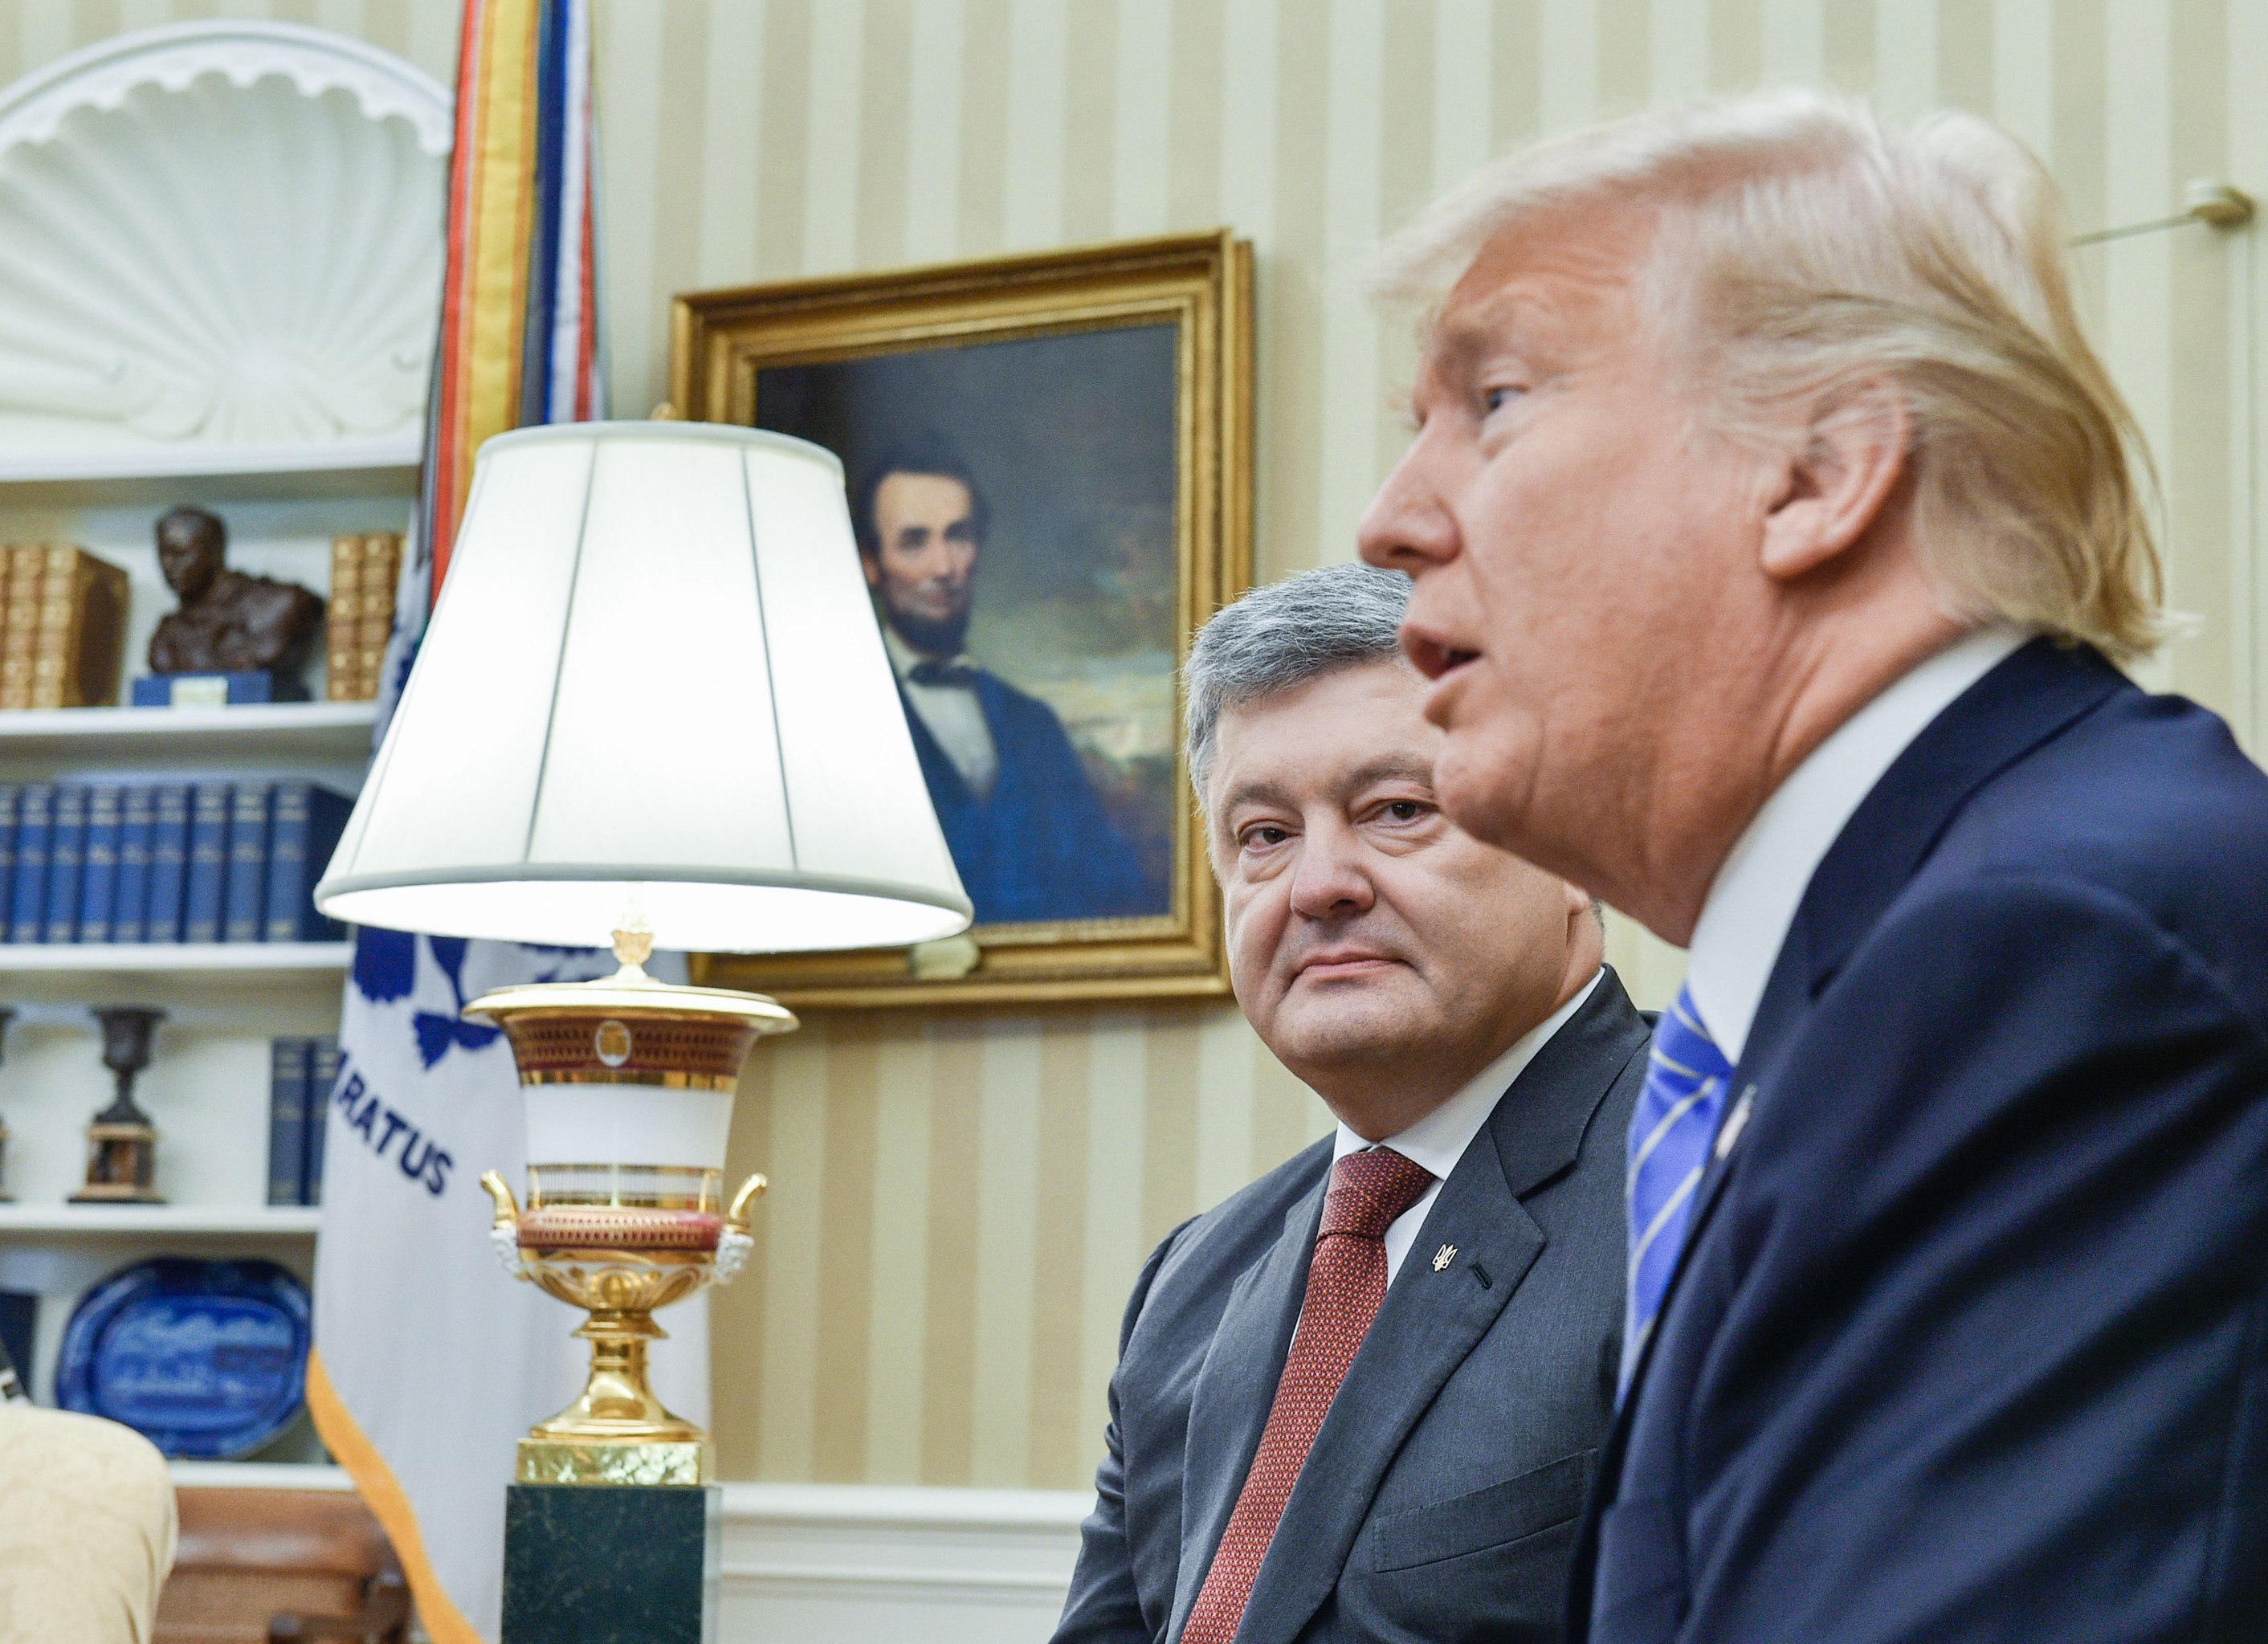 Ukrainian President Petro Poroshenko, left, and US President Donald Trump during their meeting